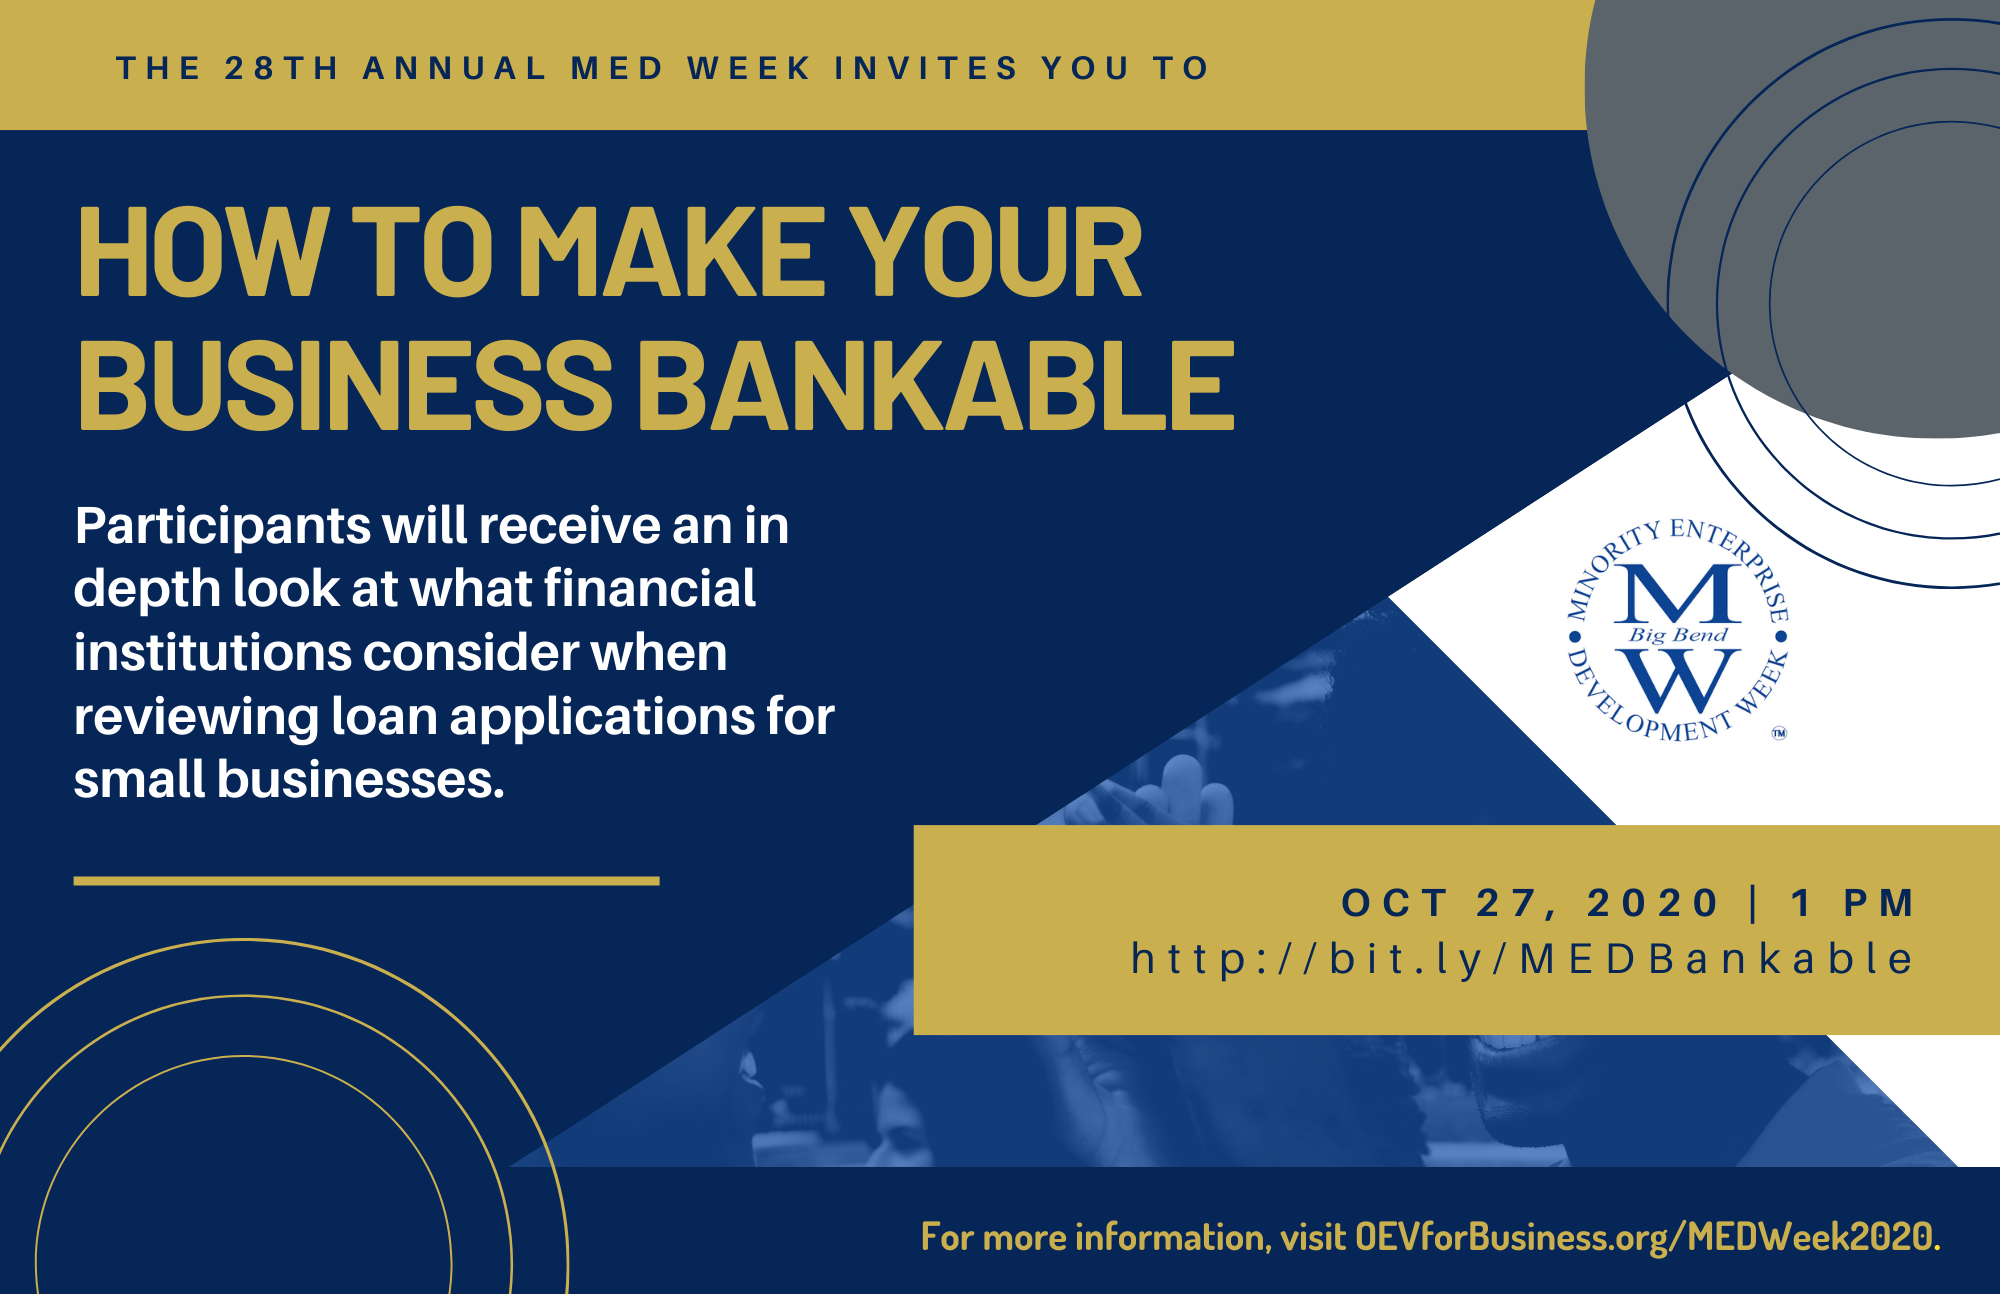 How to Make Your Business Bankable